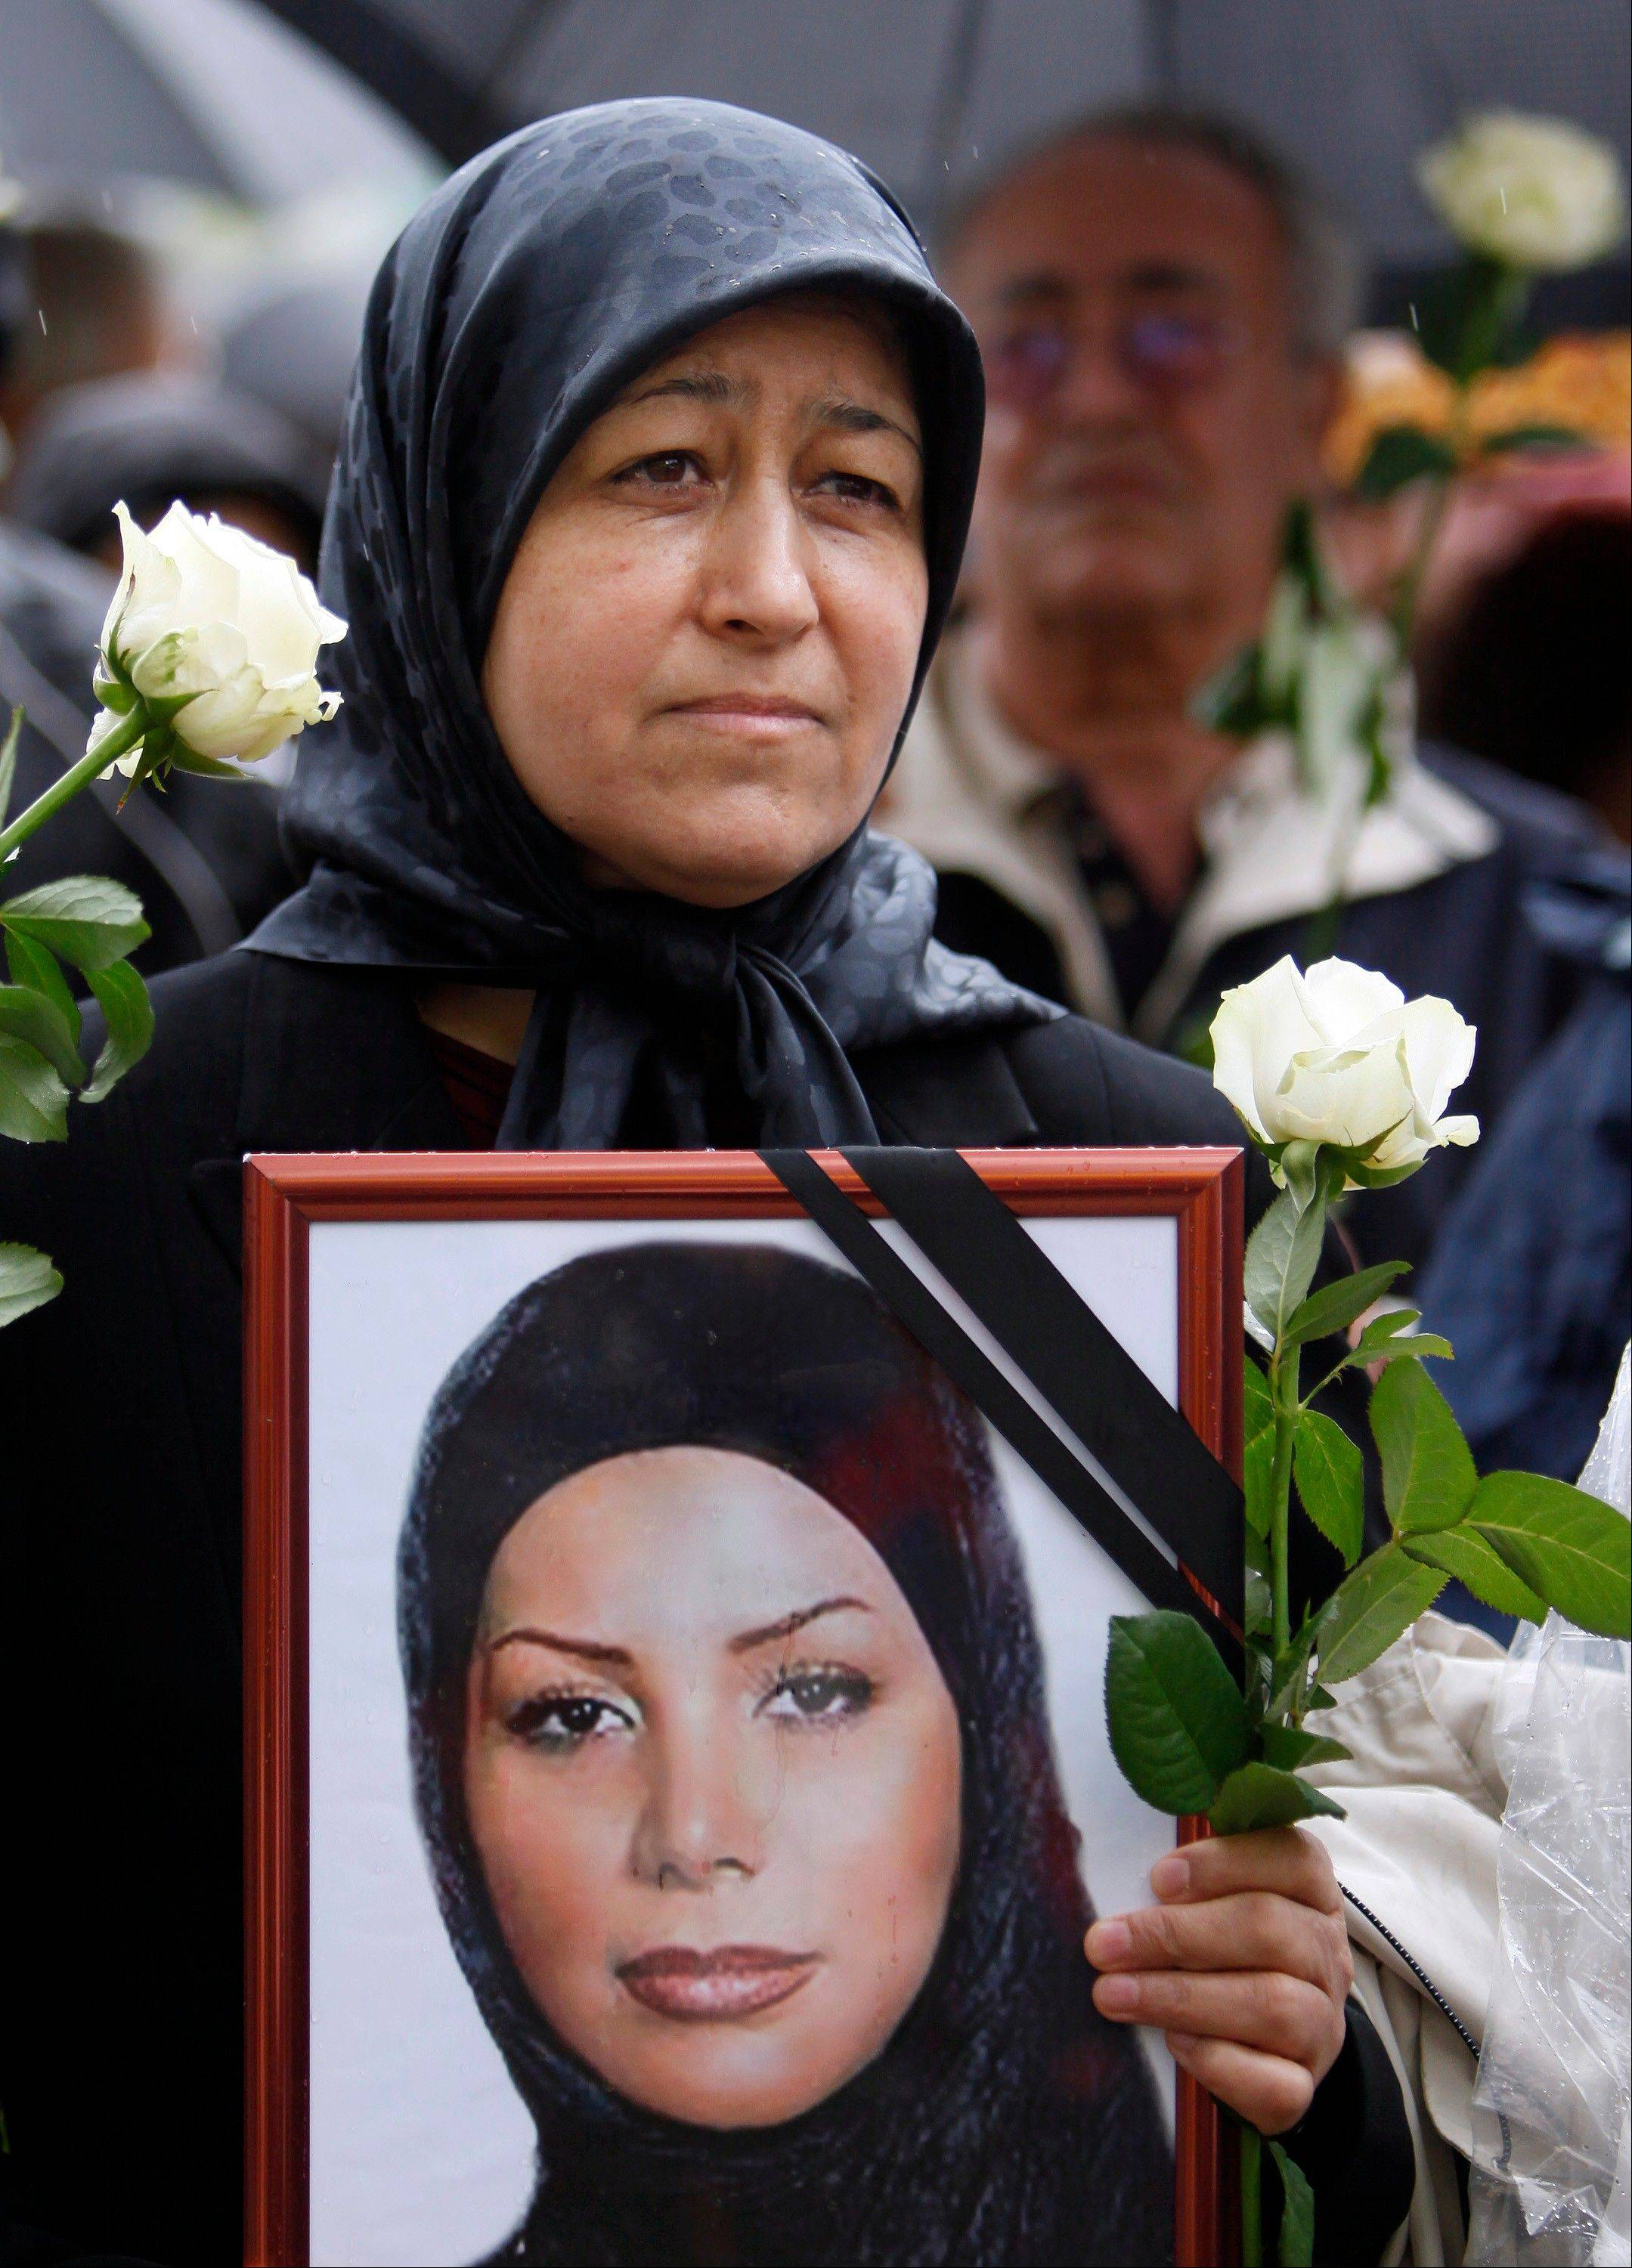 In this 2009 file photo, a woman protests against the political situation in Iran in Berlin. The protest was part of the Global Action Day 'United for Iran'. The photograph shows Iranian student Neda who was killed during a mass demonstration following the presidential elections in Iran.